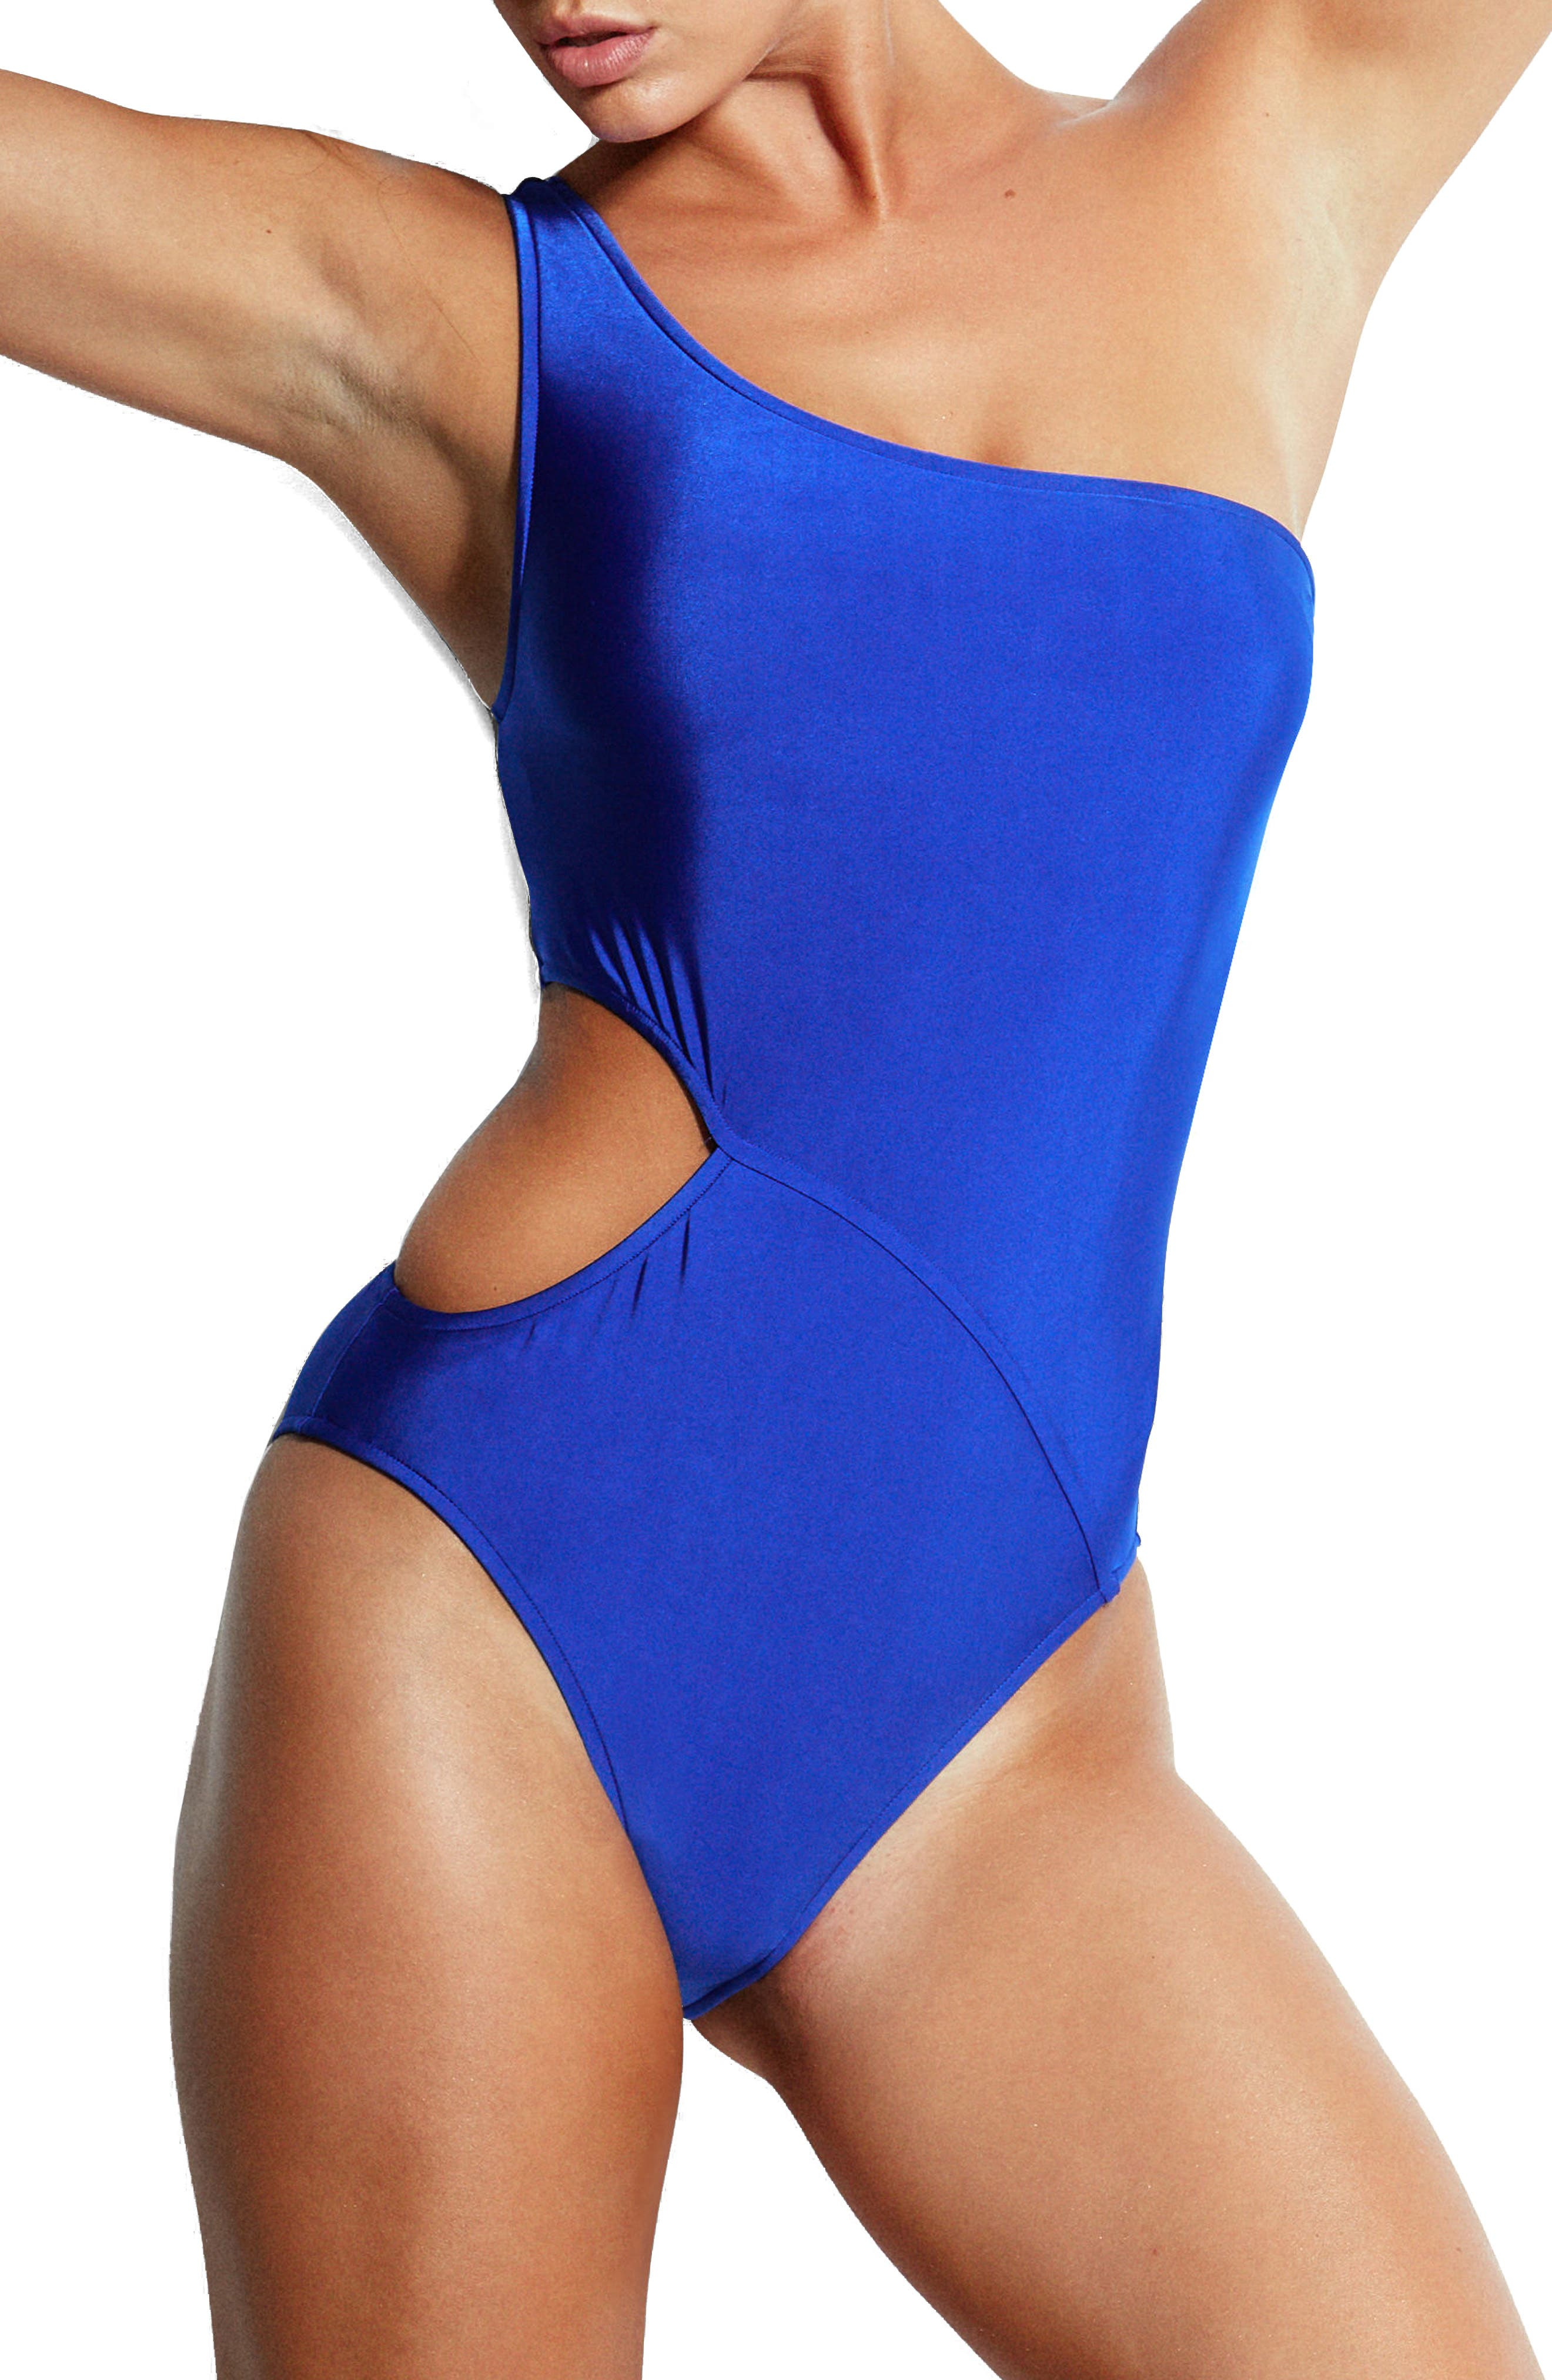 Monroe One-Shoulder One-Piece Swimsuit,                             Main thumbnail 1, color,                             Blue Ray